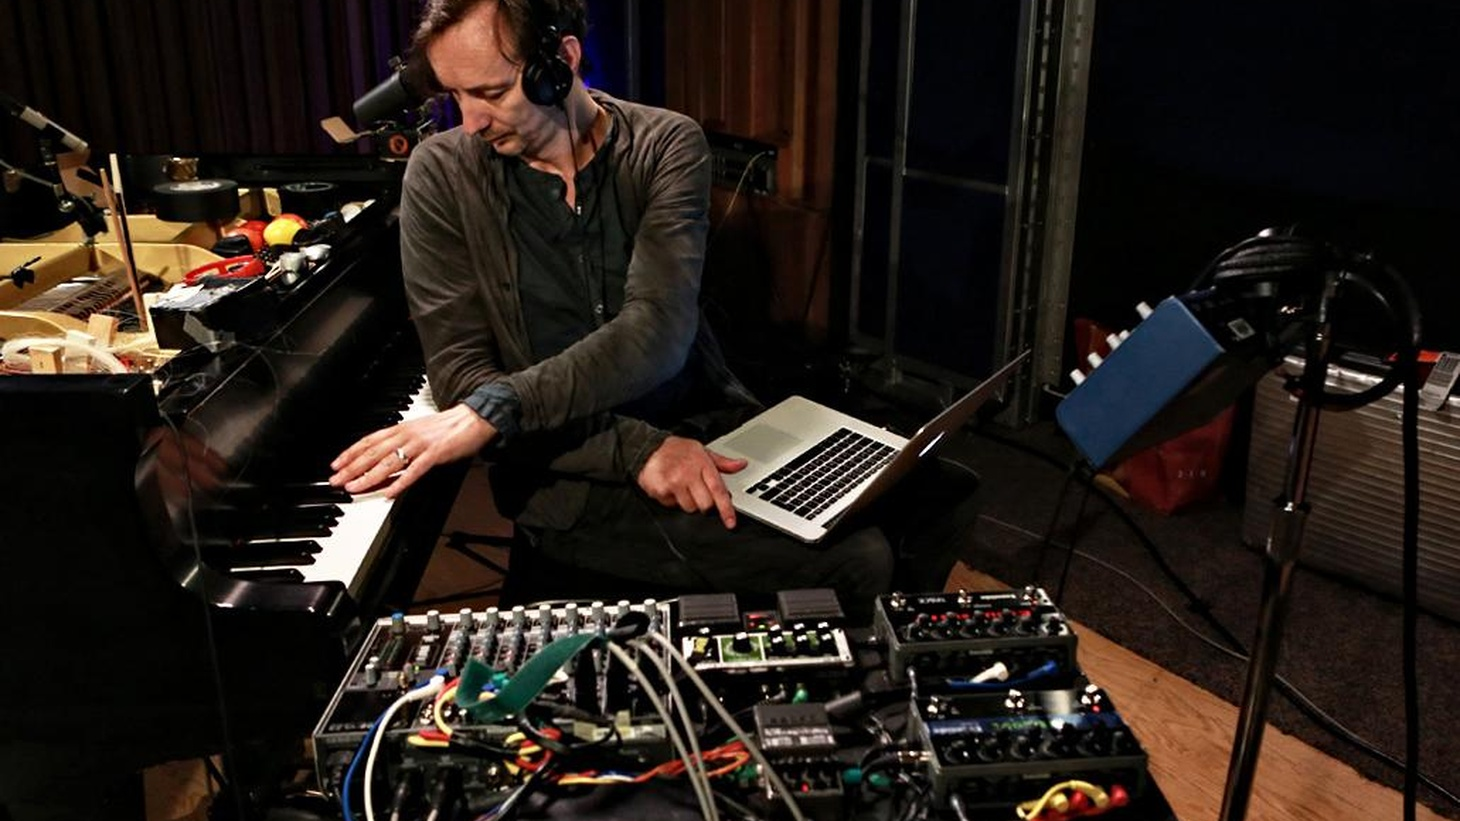 Experimental pianist Hauschka is fascinated by abandoned cities. He named each of the tracks on his new album after these places, including an Italian village swallowed by a sinkhole in 1963.